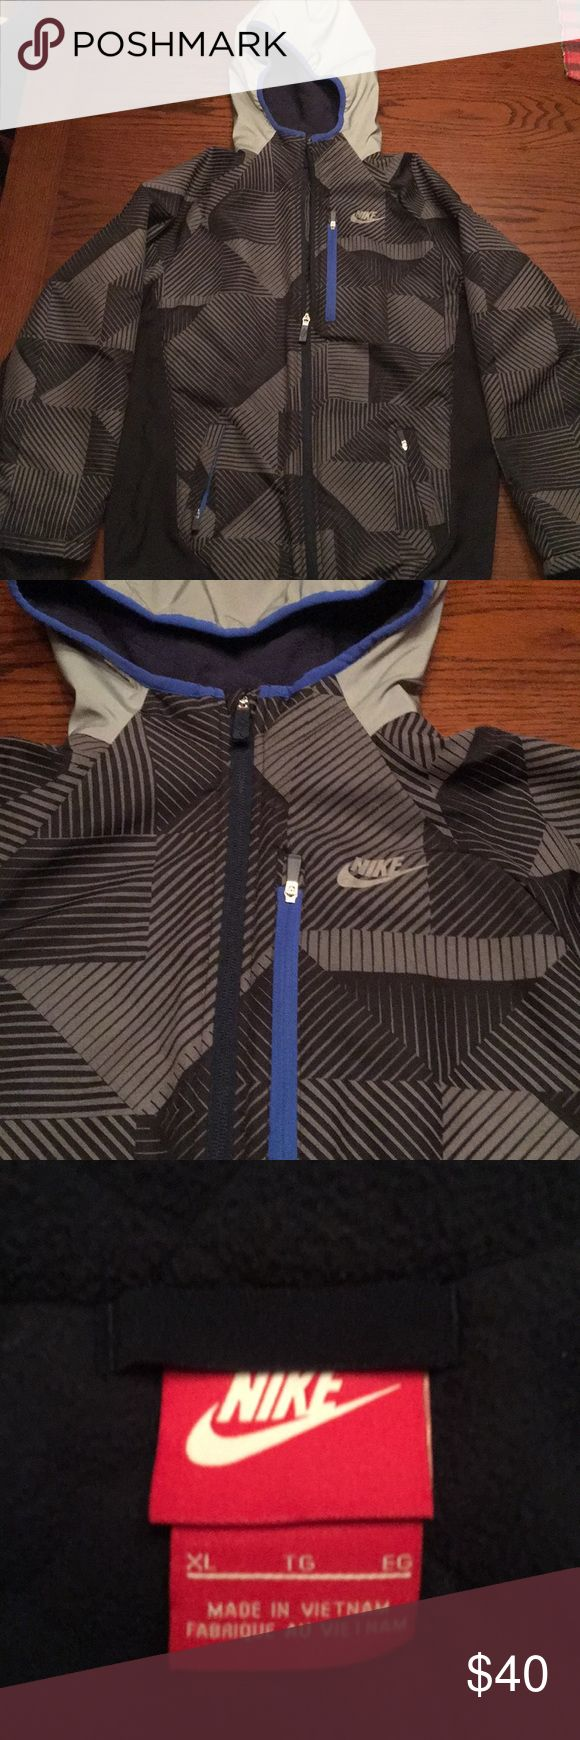 Nike boys winter jacket Nike winter jacket: light weight but warm, fleece interior, zip front with hood, 2 front hand pockets and a chest pocket, also inner pocket, sleeves have warm wrist sleeves with thumb holes.  EUC Nike Jackets & Coats